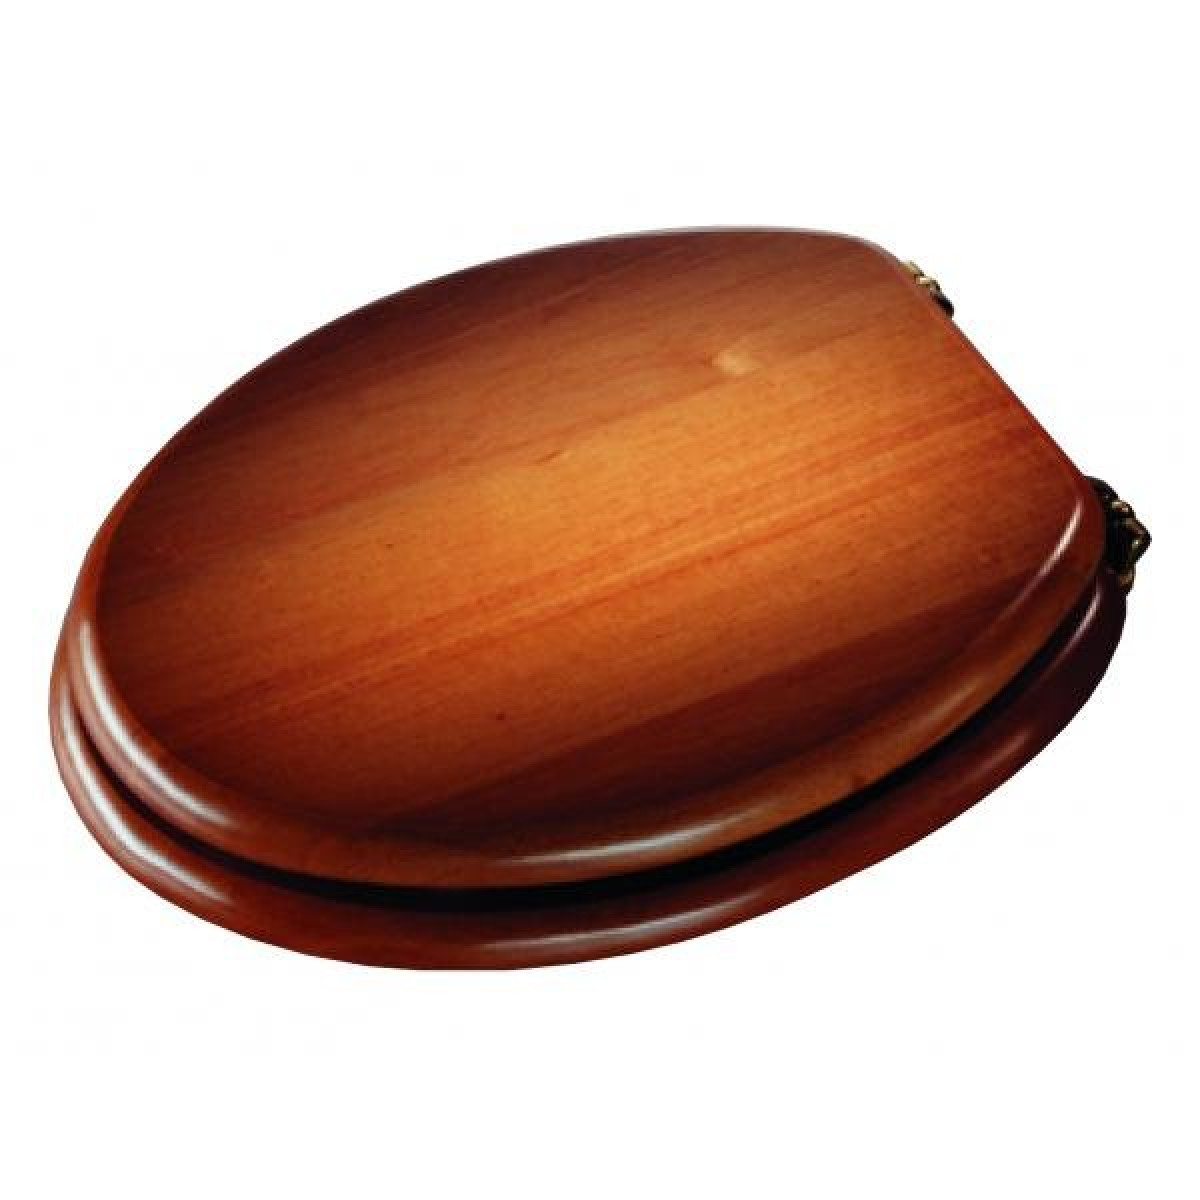 Tremendous Home Furniture Diy Solid Wooden Bathroom Toilet Seat Ibusinesslaw Wood Chair Design Ideas Ibusinesslaworg